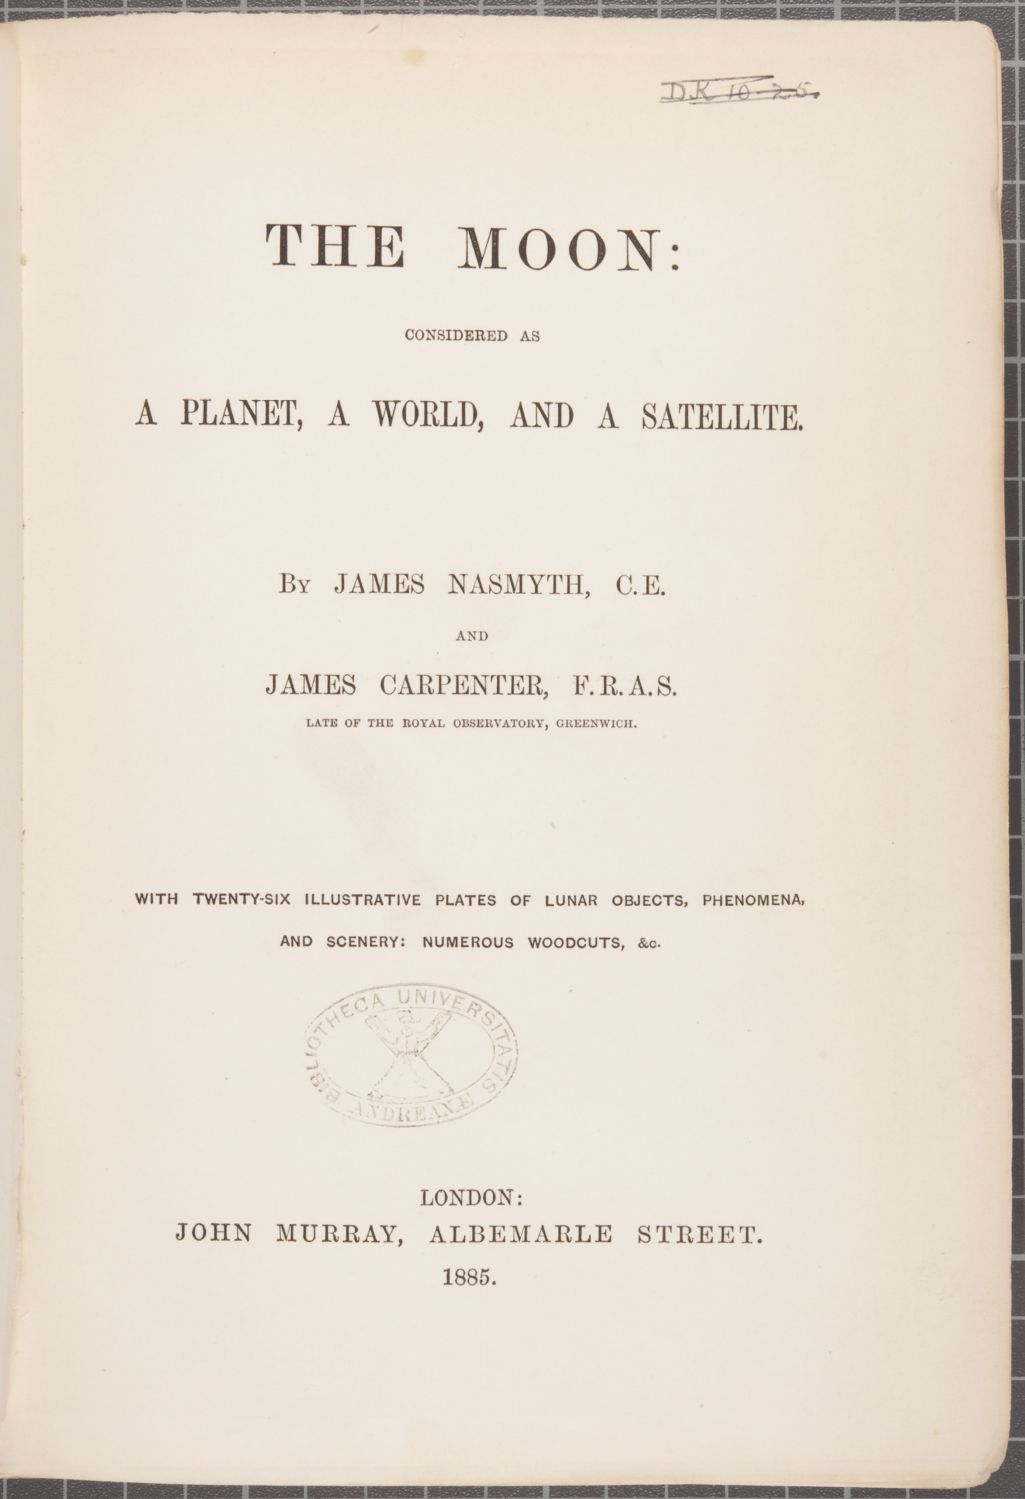 The moon : considered as a planet, a world, and a satellite.